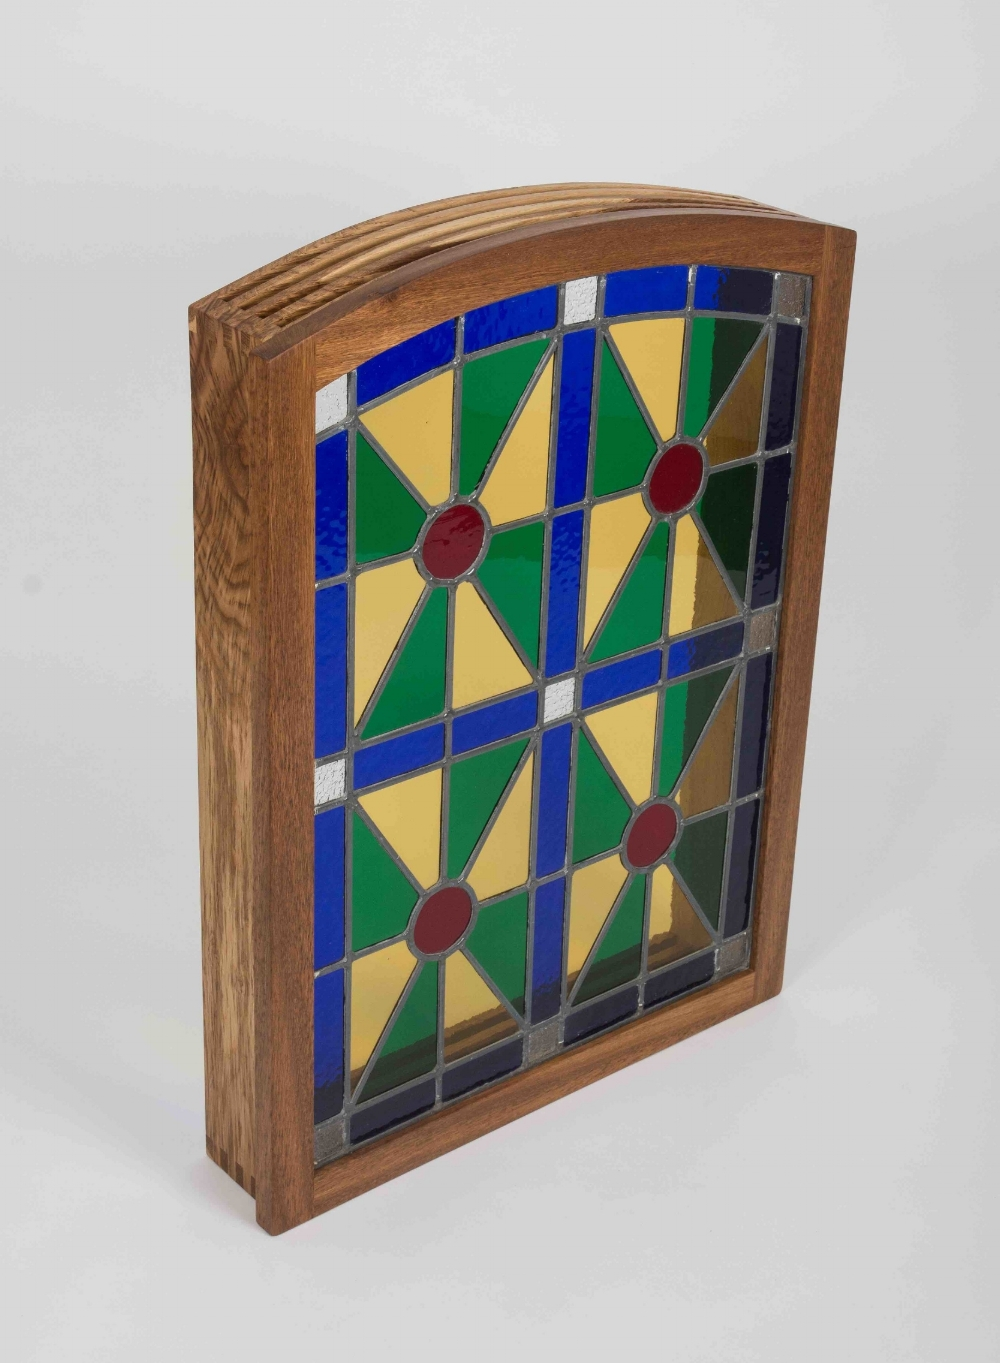 stainglass:lowres.jpg